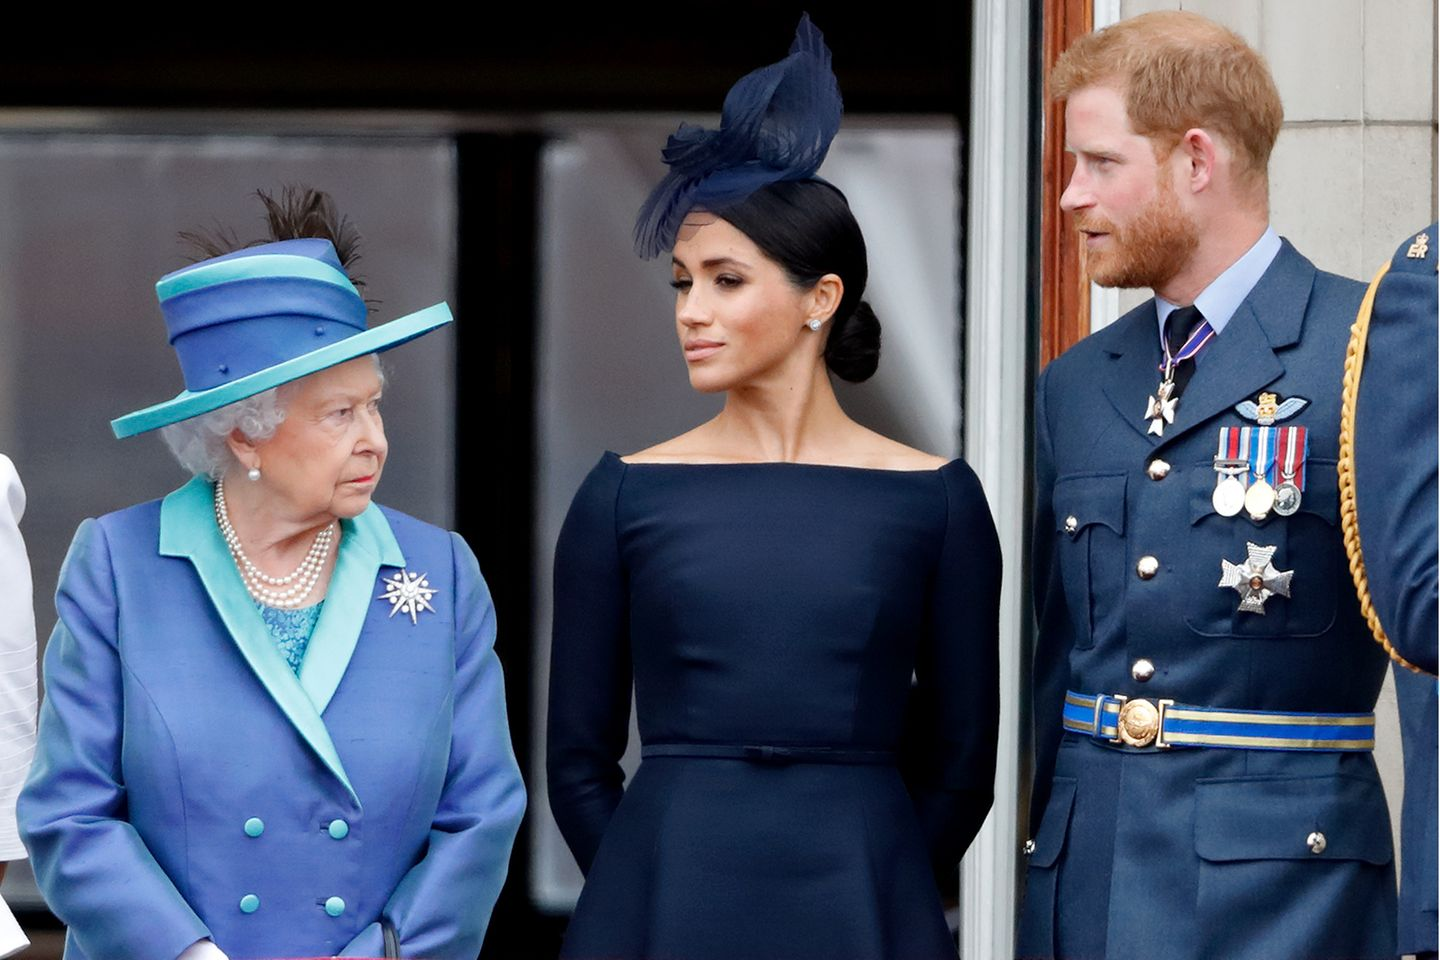 Duchess-Meghan-Prince-Harry-The-palace-ignores-their-allegations